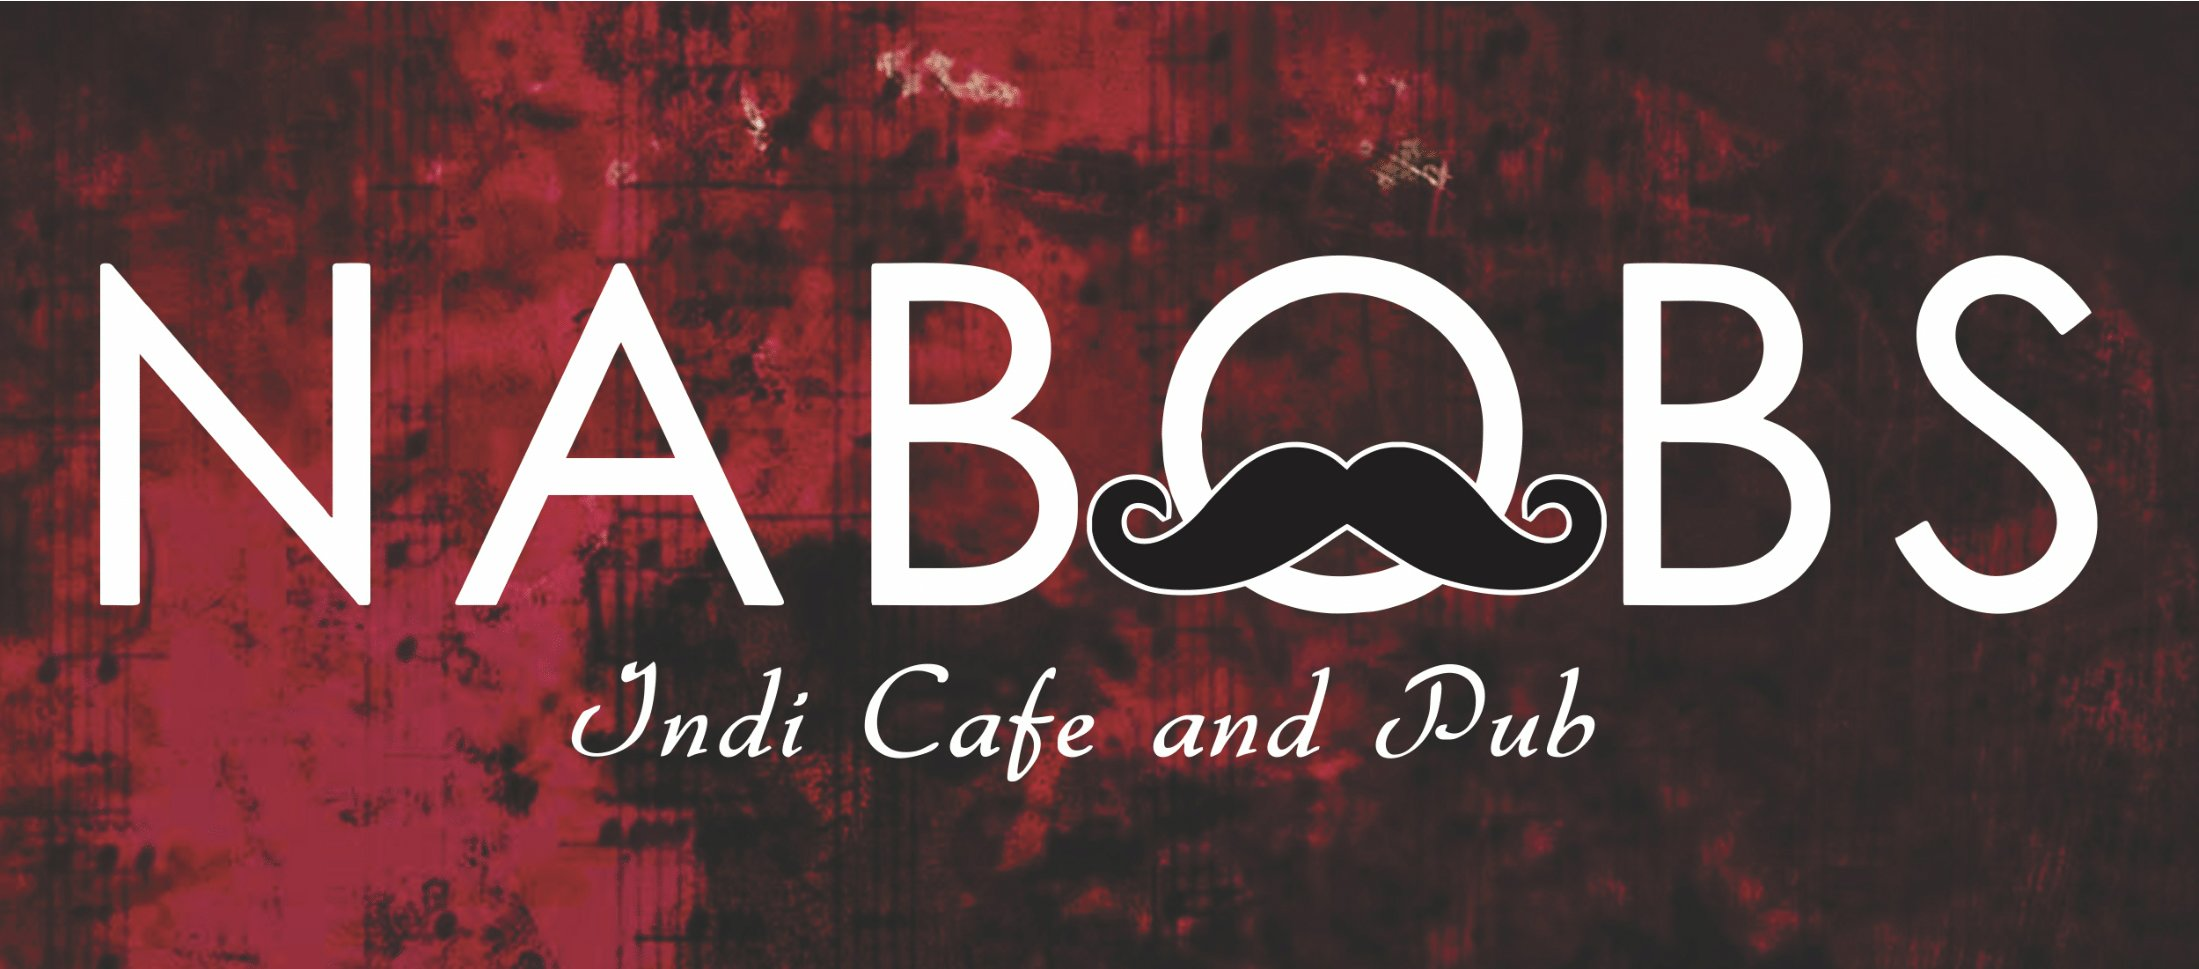 NABOBS Cafe and Pub